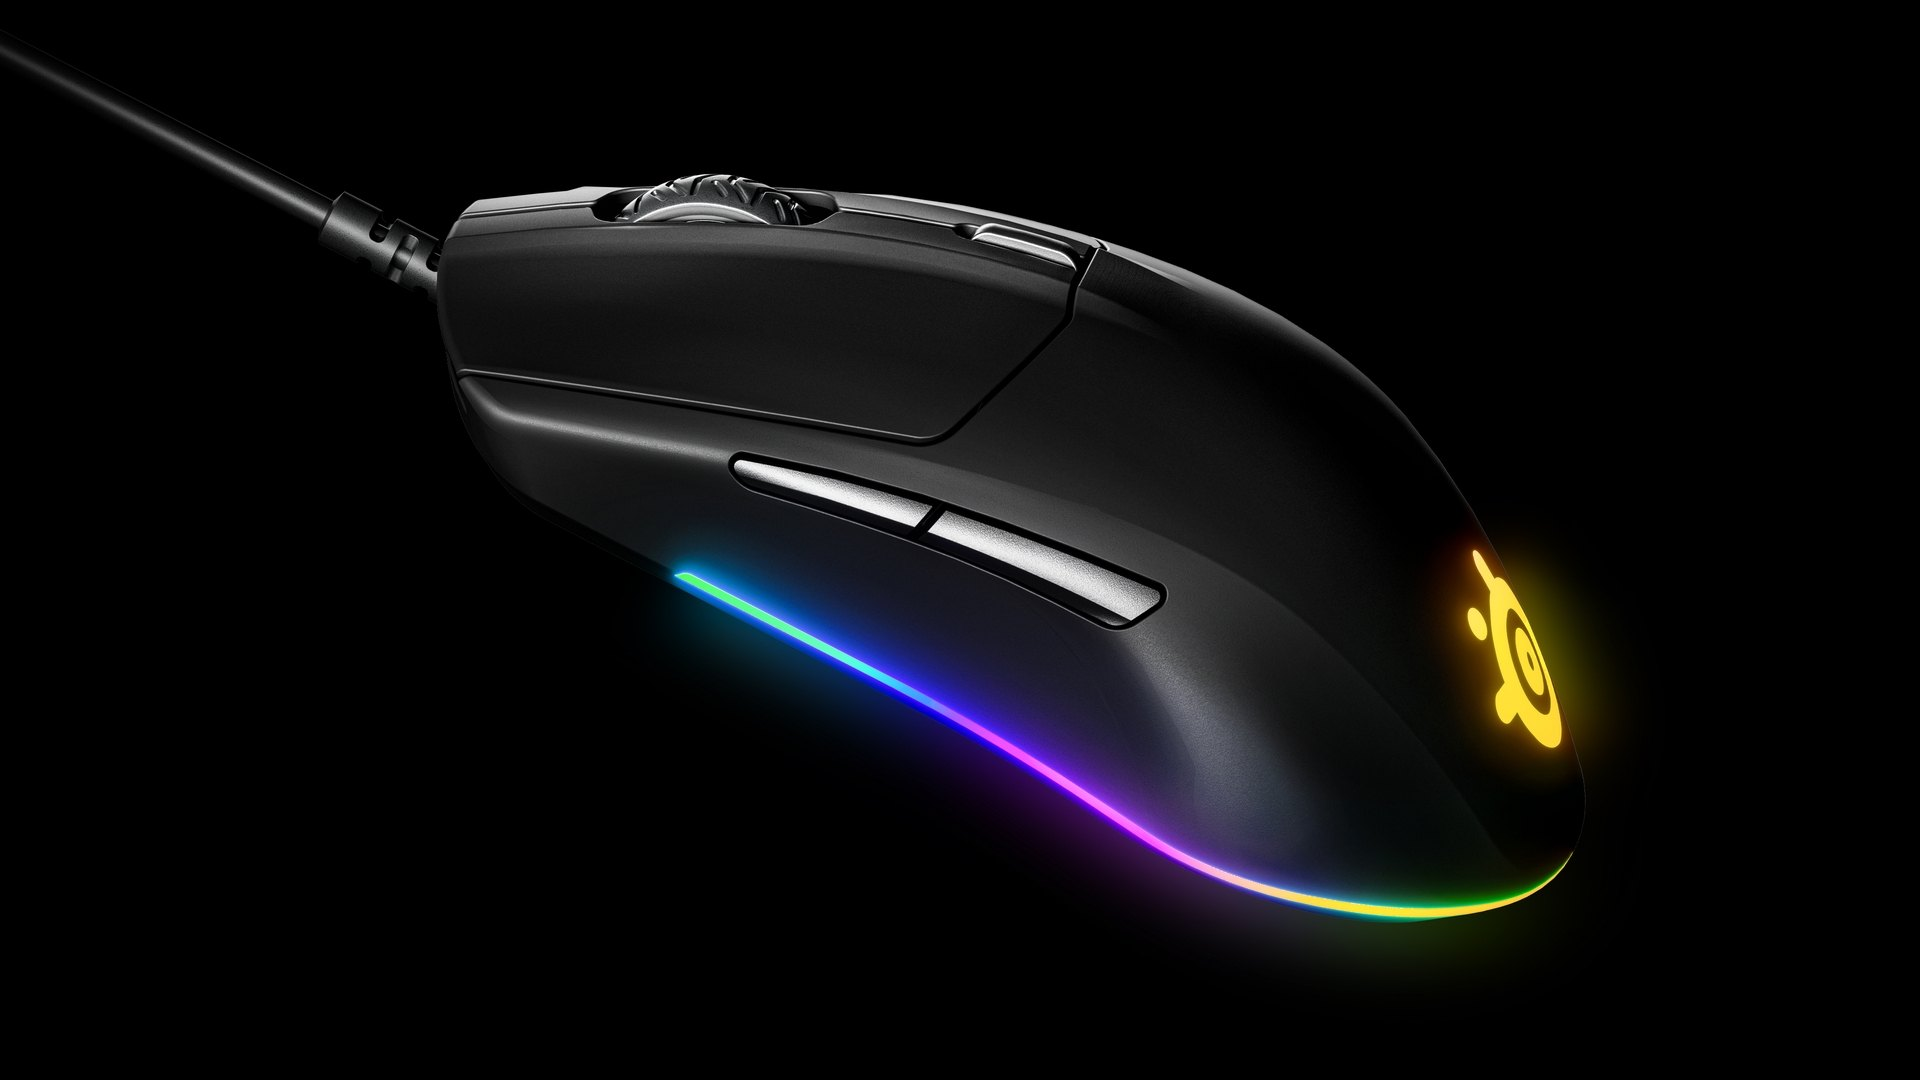 thiết kế của SteelSeries Rival 3